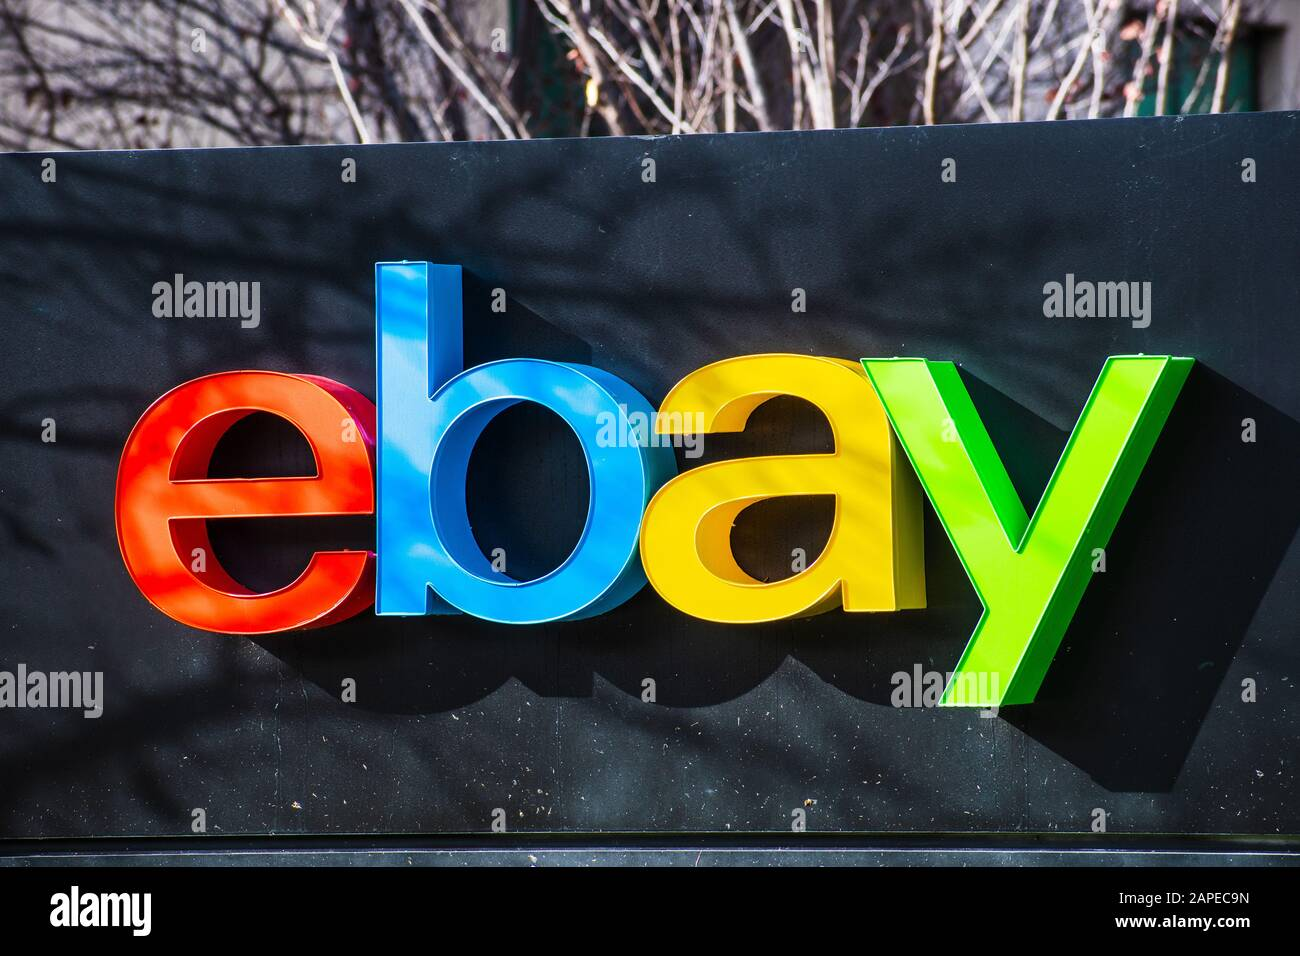 Jan 12 2020 San Jose Ca Usa Ebay Logo At Their Corporate Headquarters In Silicon Valley Ebay Inc Is An American Multinational E Commerce Corp Stock Photo Alamy